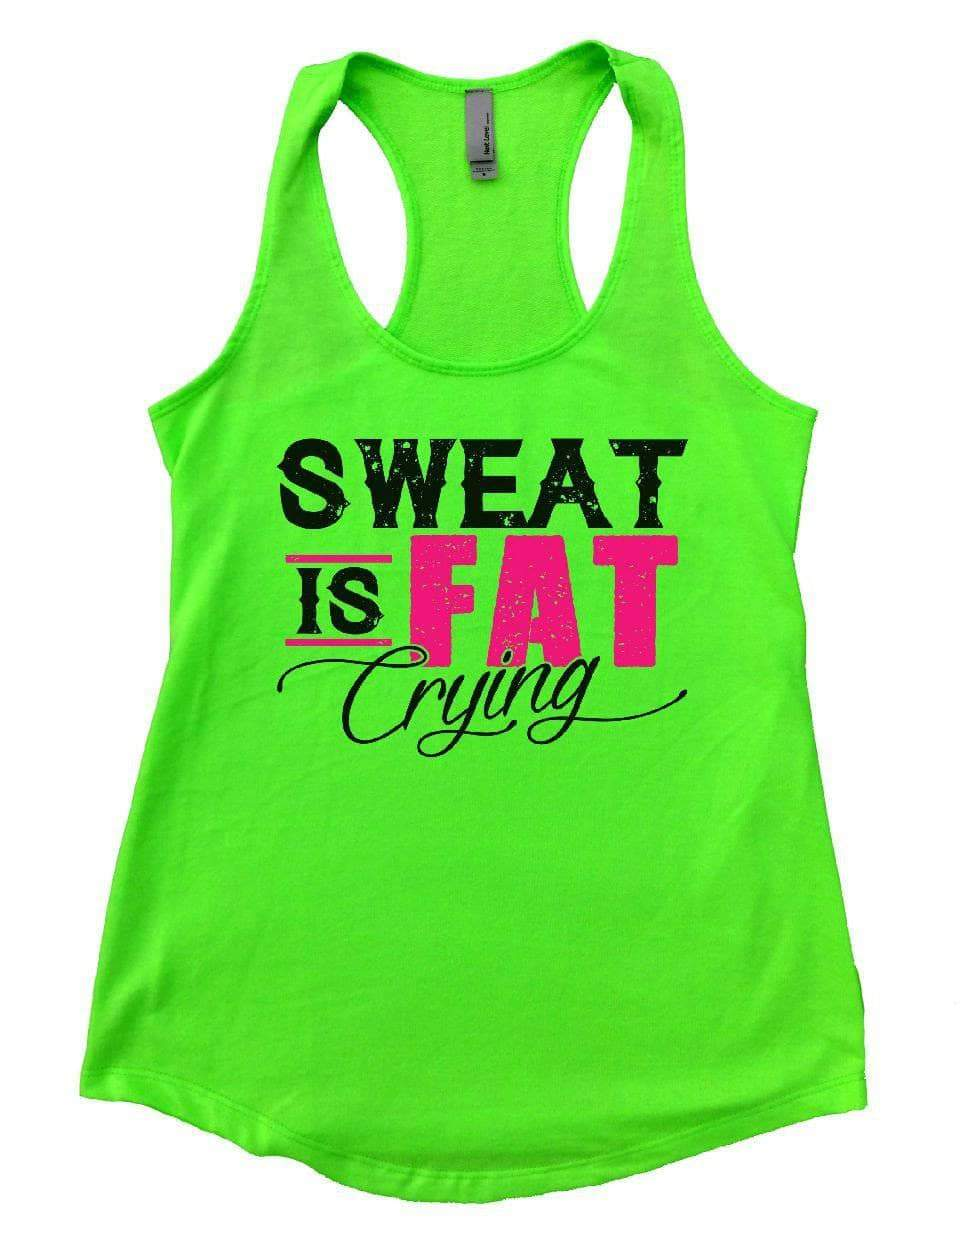 SWEAT IS FAT Crying Womens Workout Tank Top Small Womens Tank Tops Neon Green